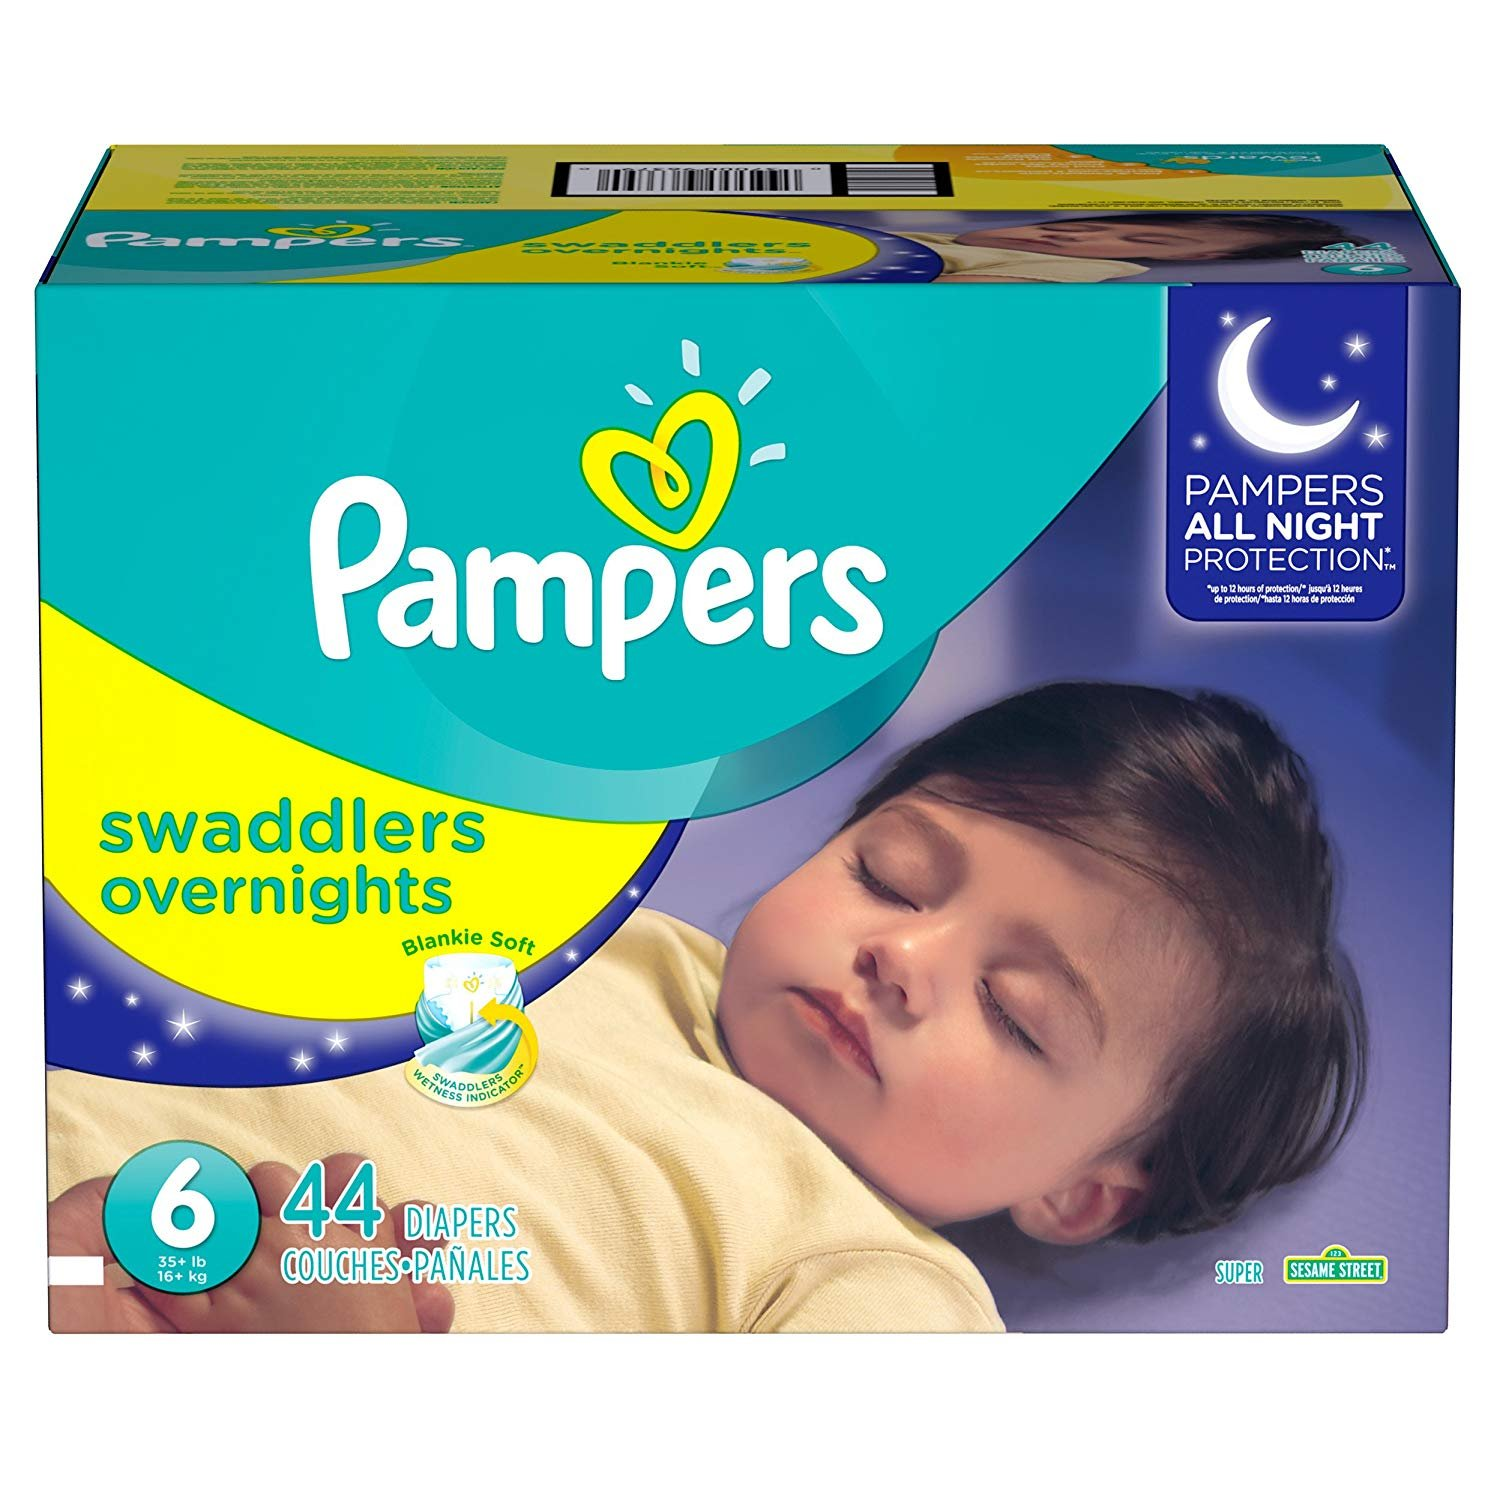 Pampers Swaddlers Overnights Diapers Size 6, 44 Count